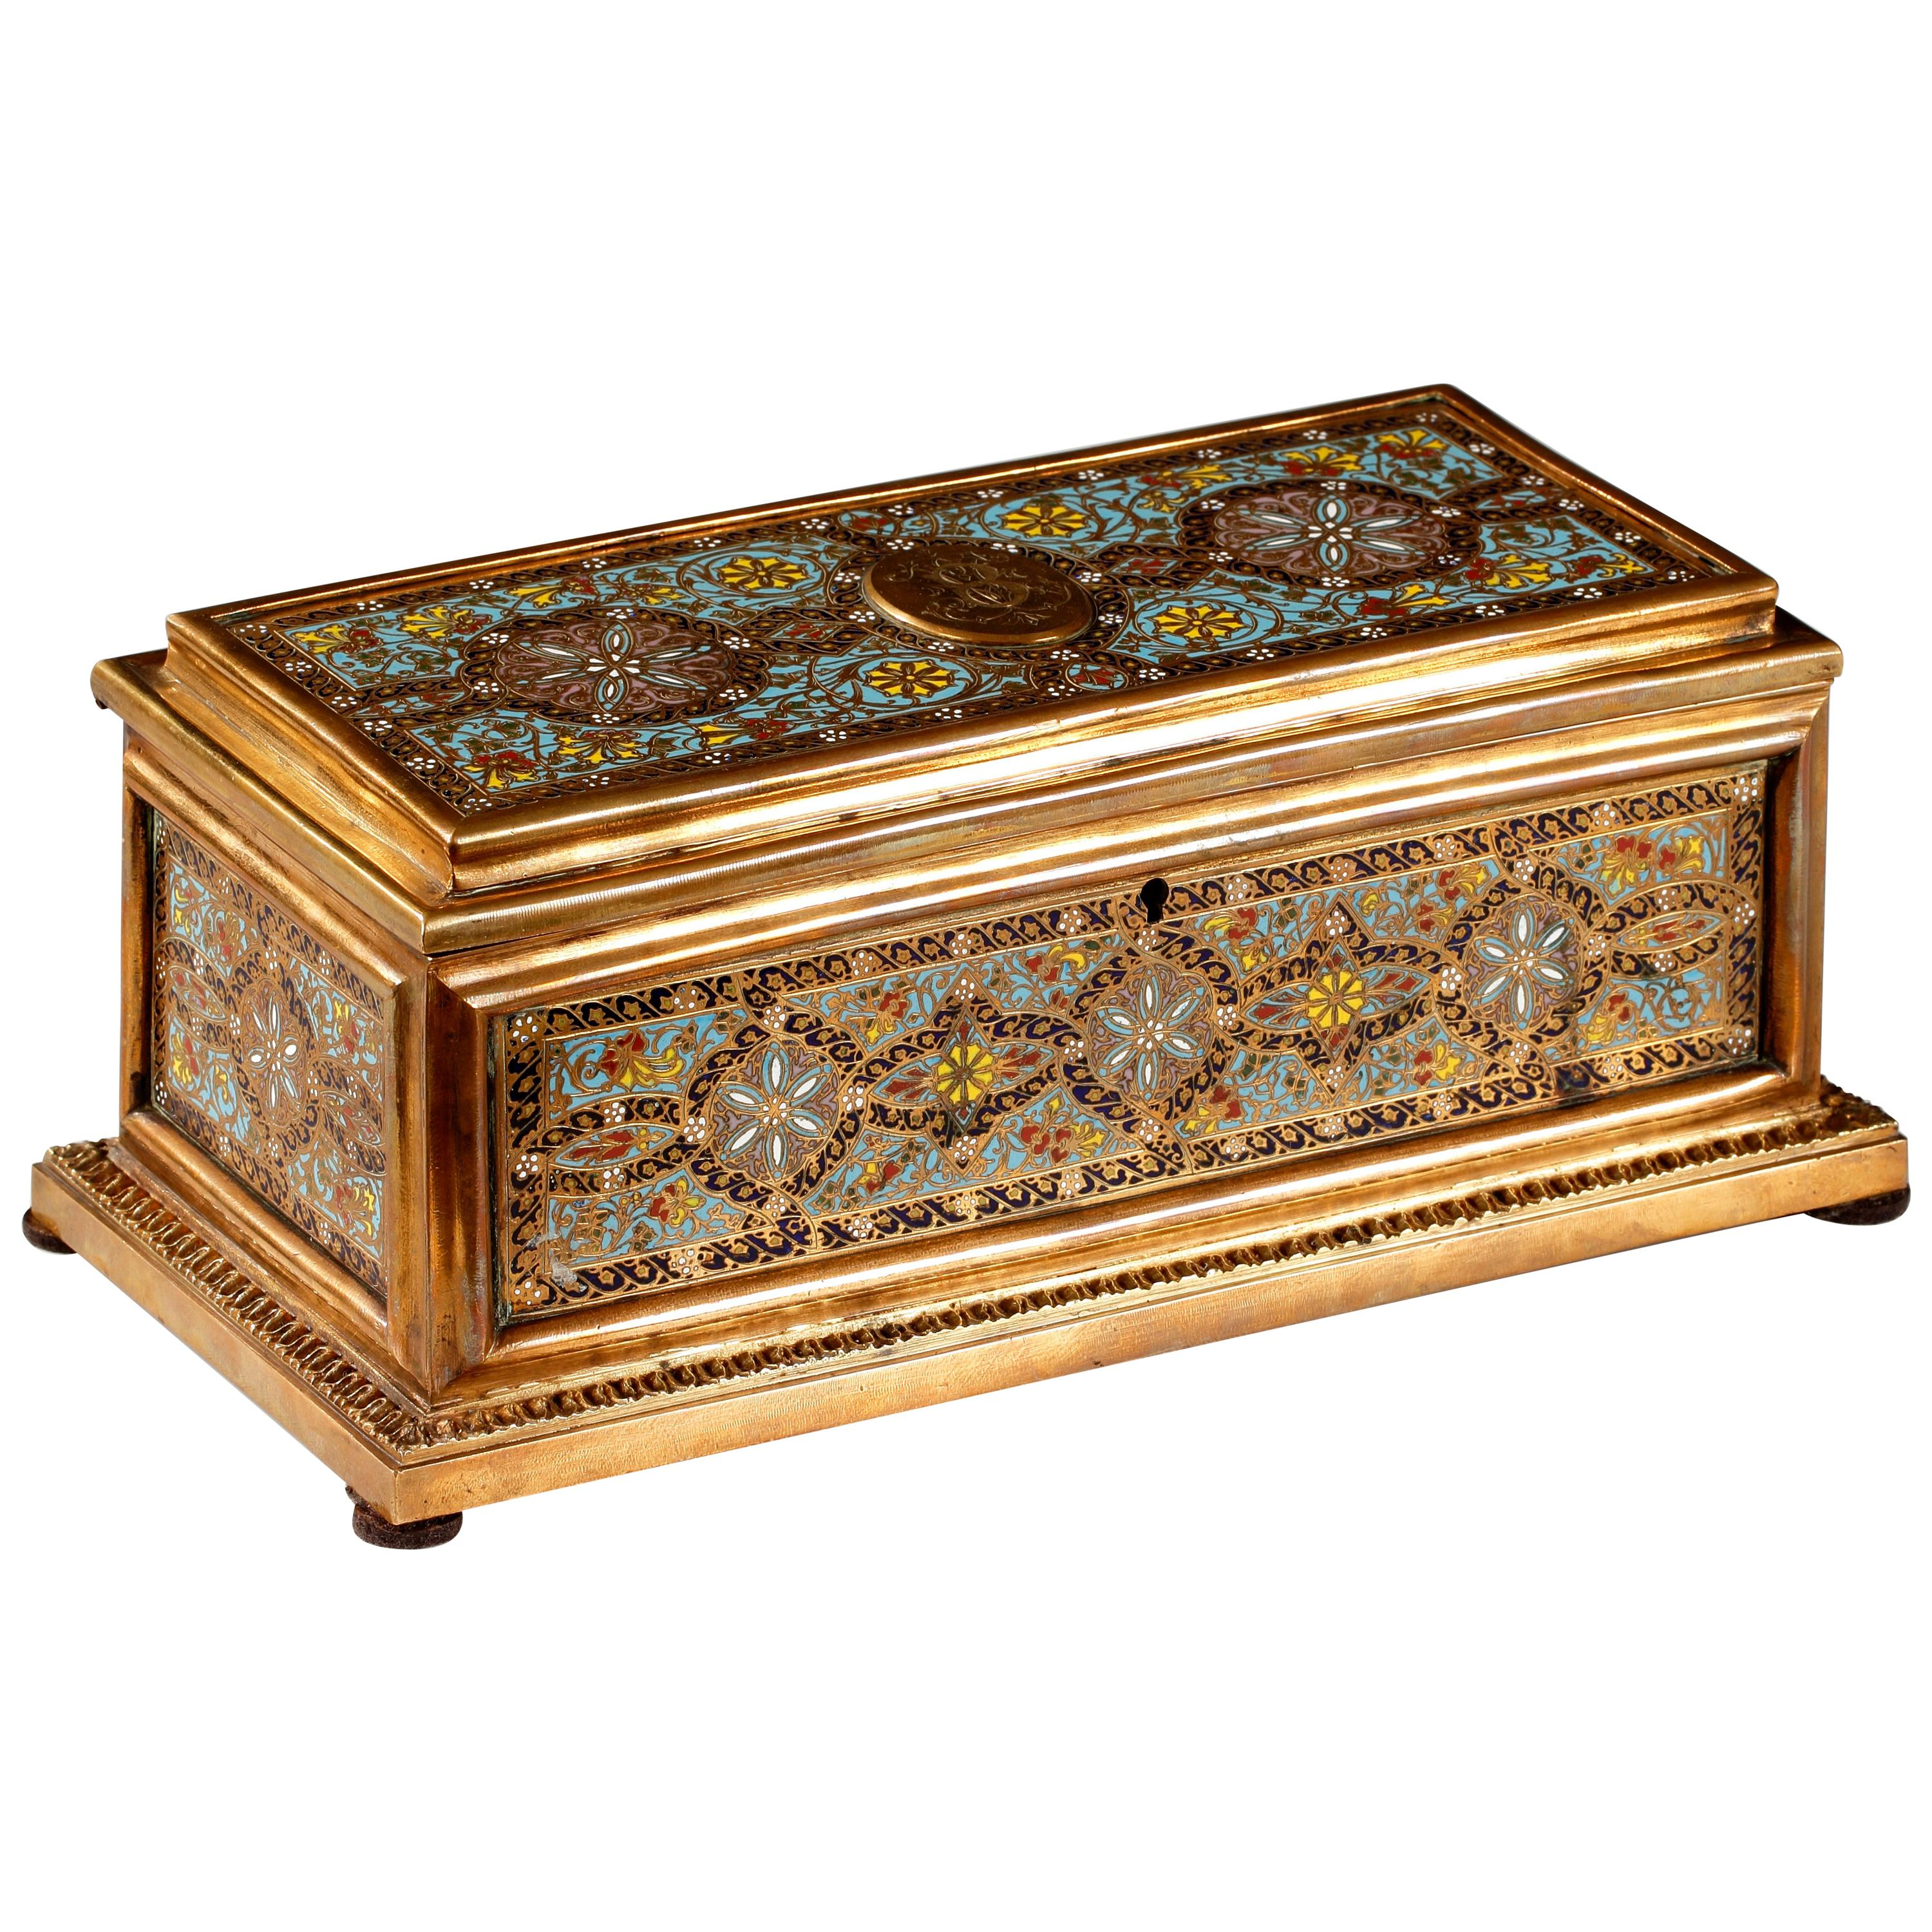 Charming Enamelled and Gilded Bronze Casket by Tahan